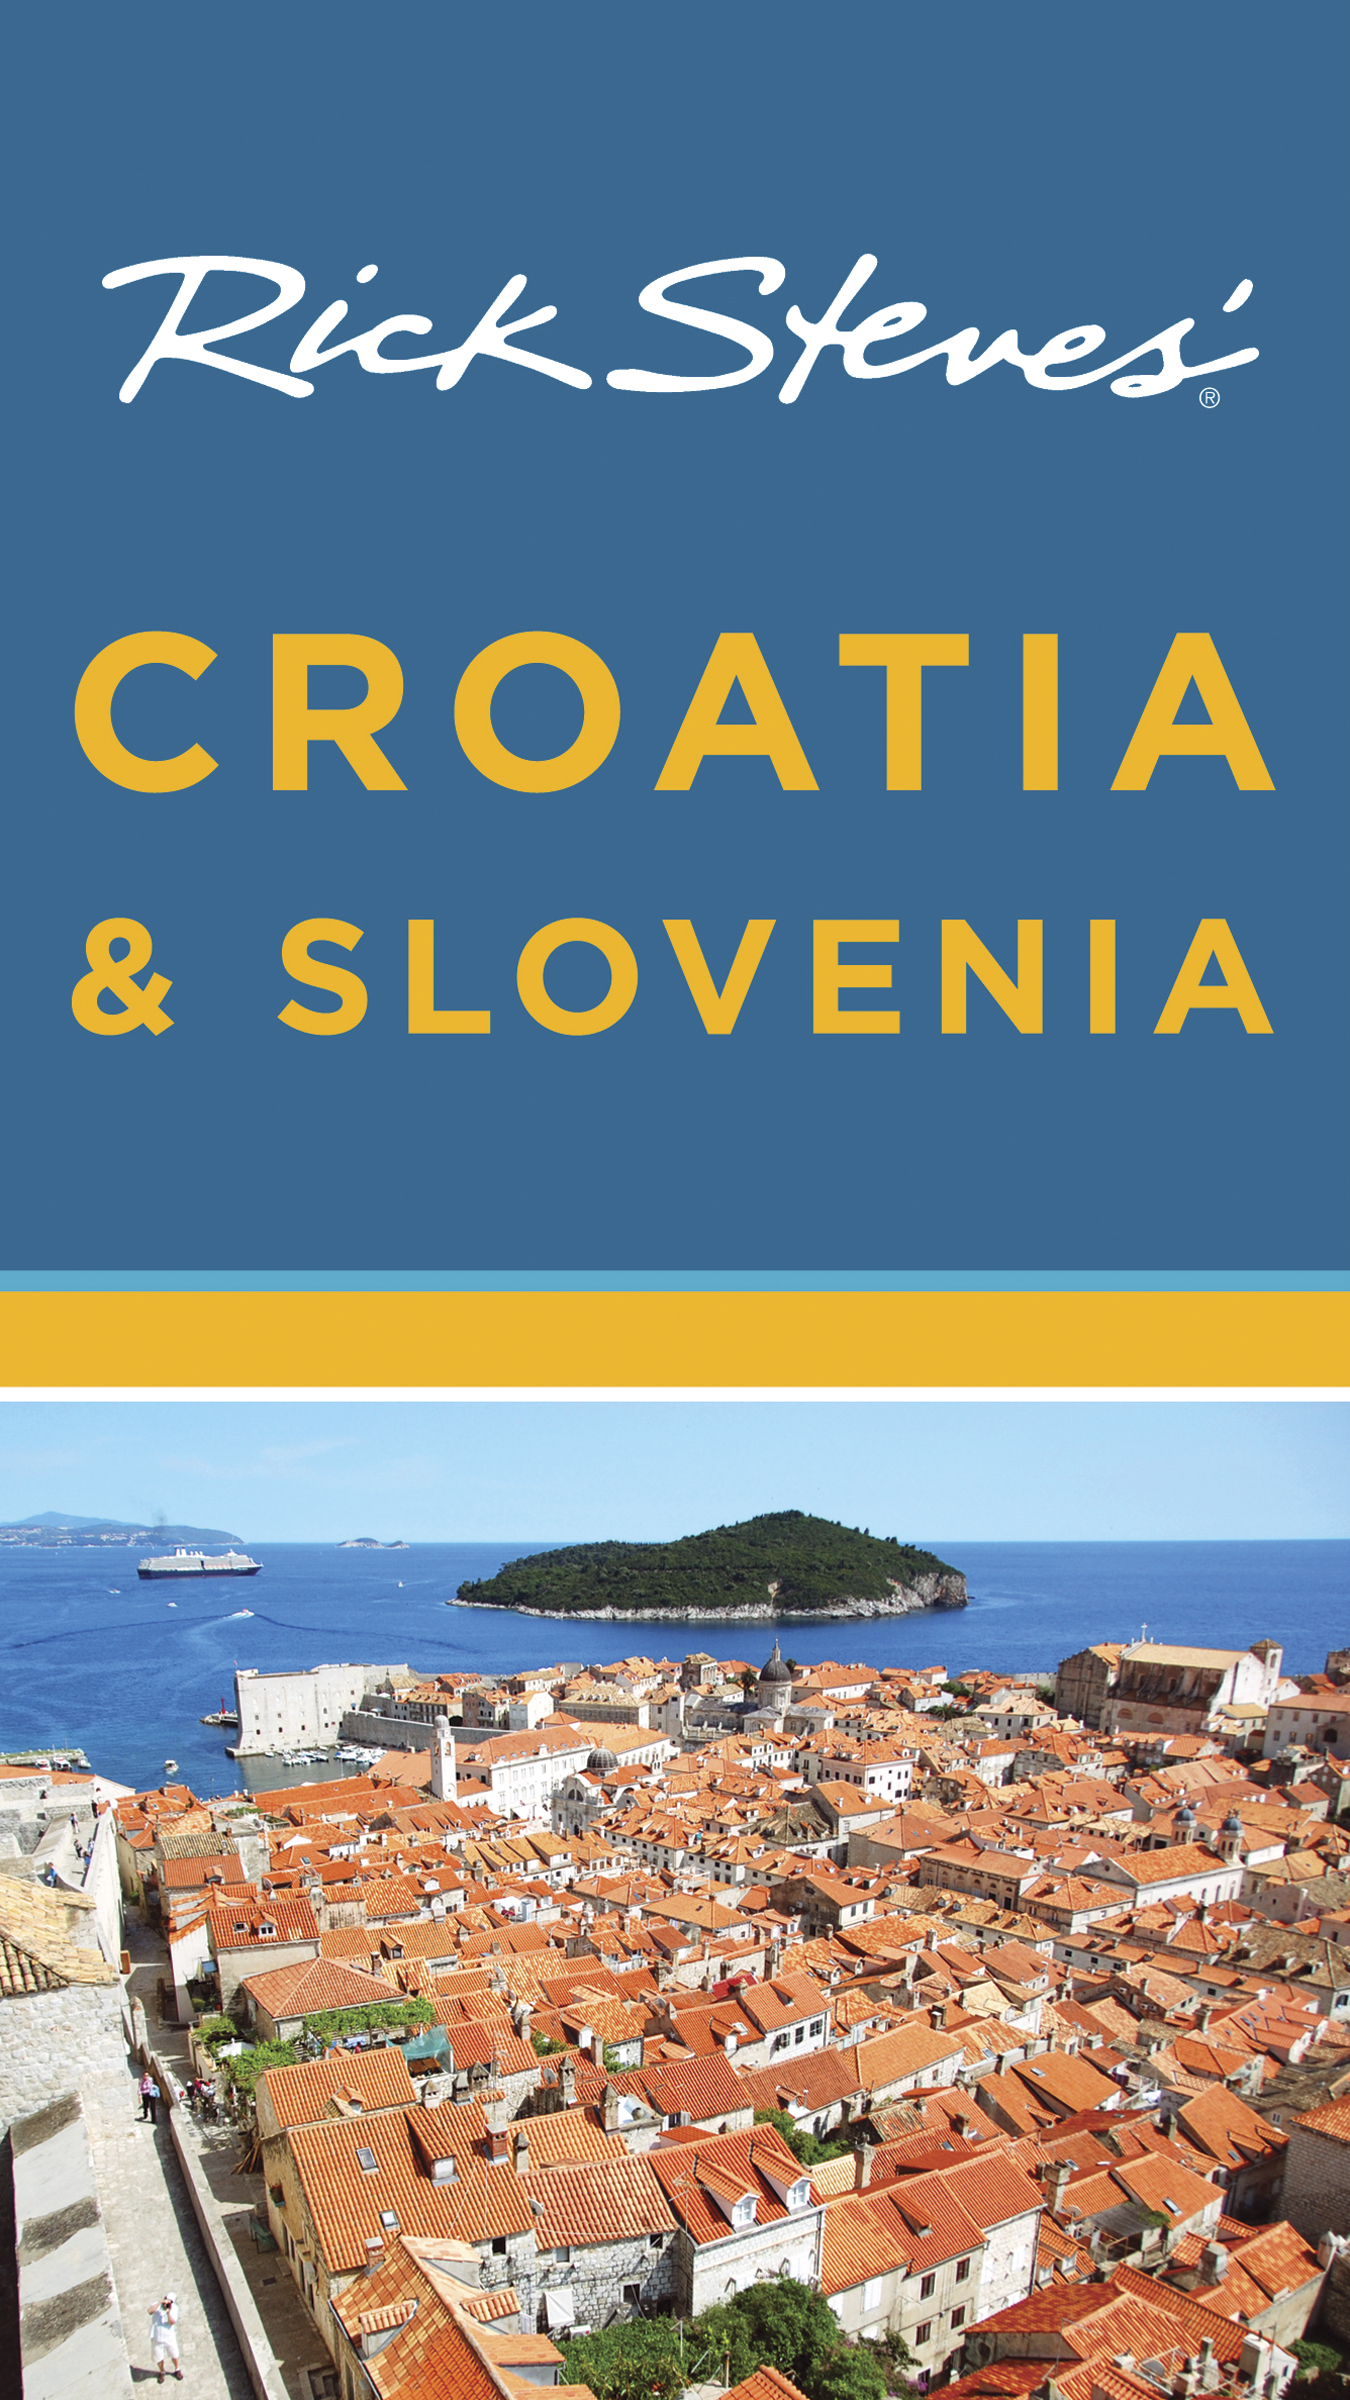 Rick Steves' Croatia and Slovenia By: Cameron Hewitt,Rick Steves